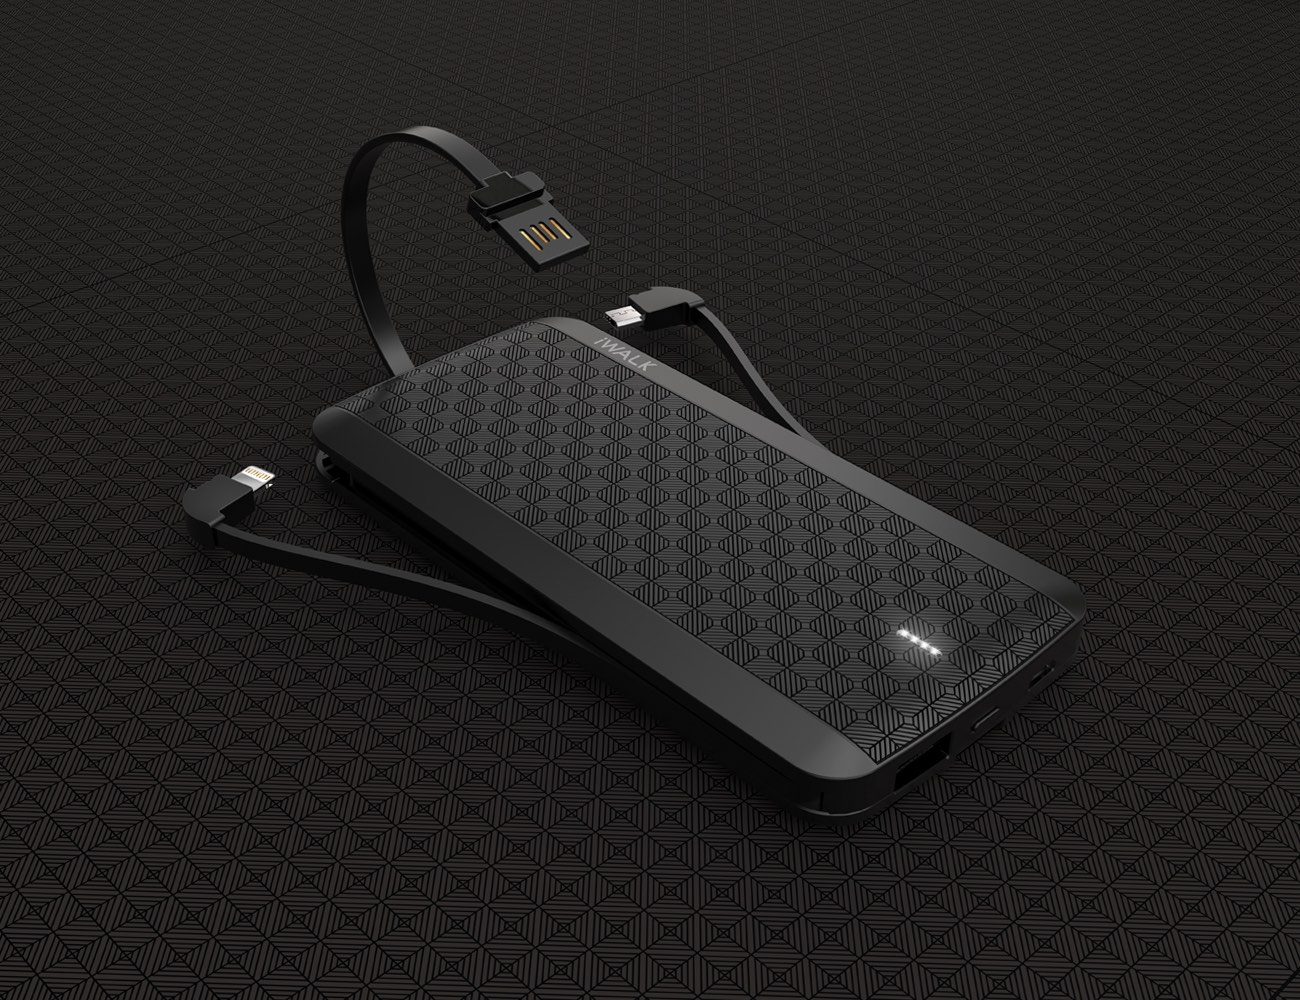 iWalk Scorpion Ultra Slim Power Bank With Built In Cables